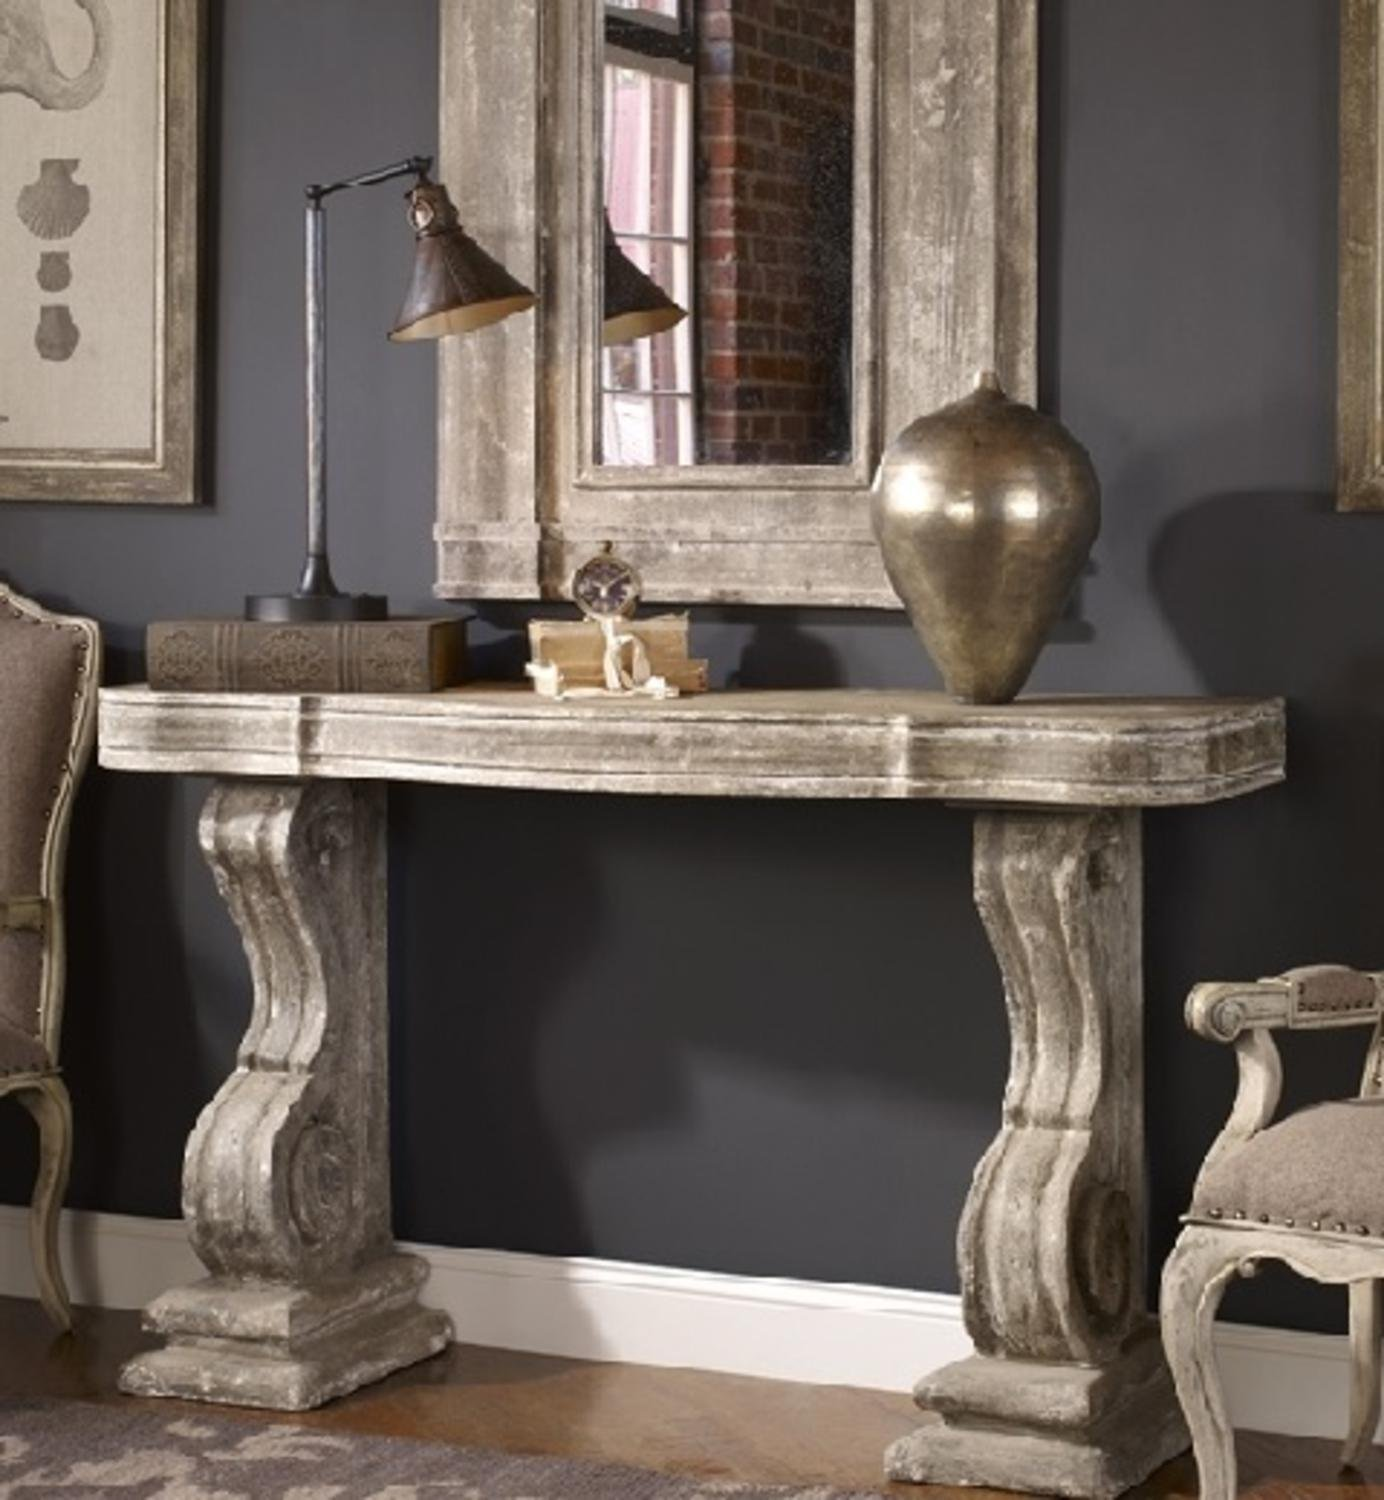 60'' Alexiares Old World Italian Rectangular Console Table with Aged Stone Gray Finish